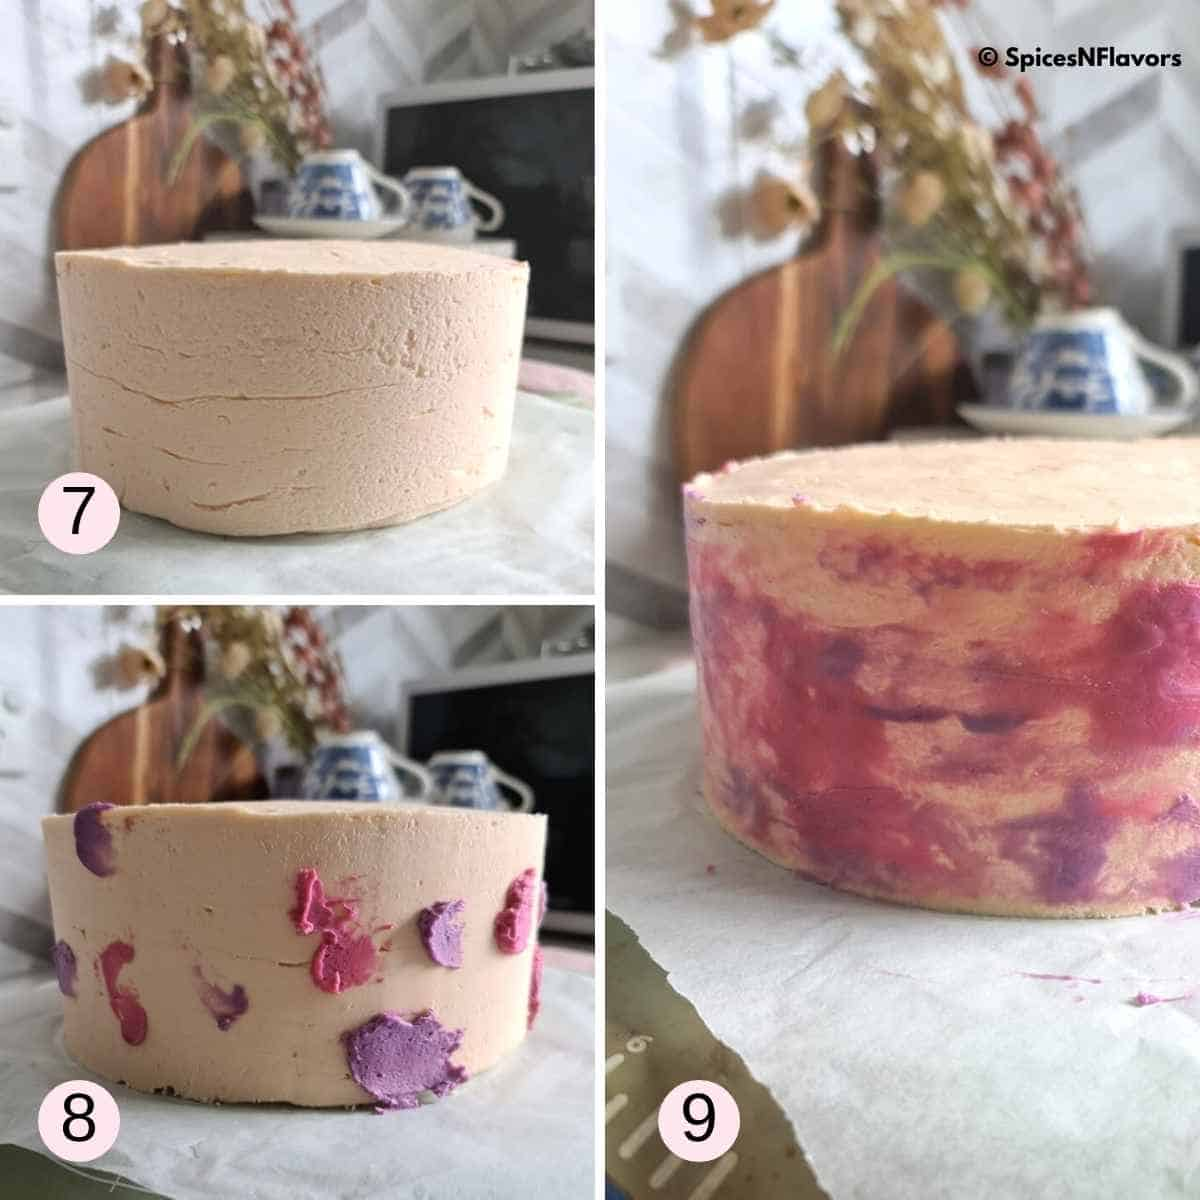 collage of images showing the watercolour technique on the cake